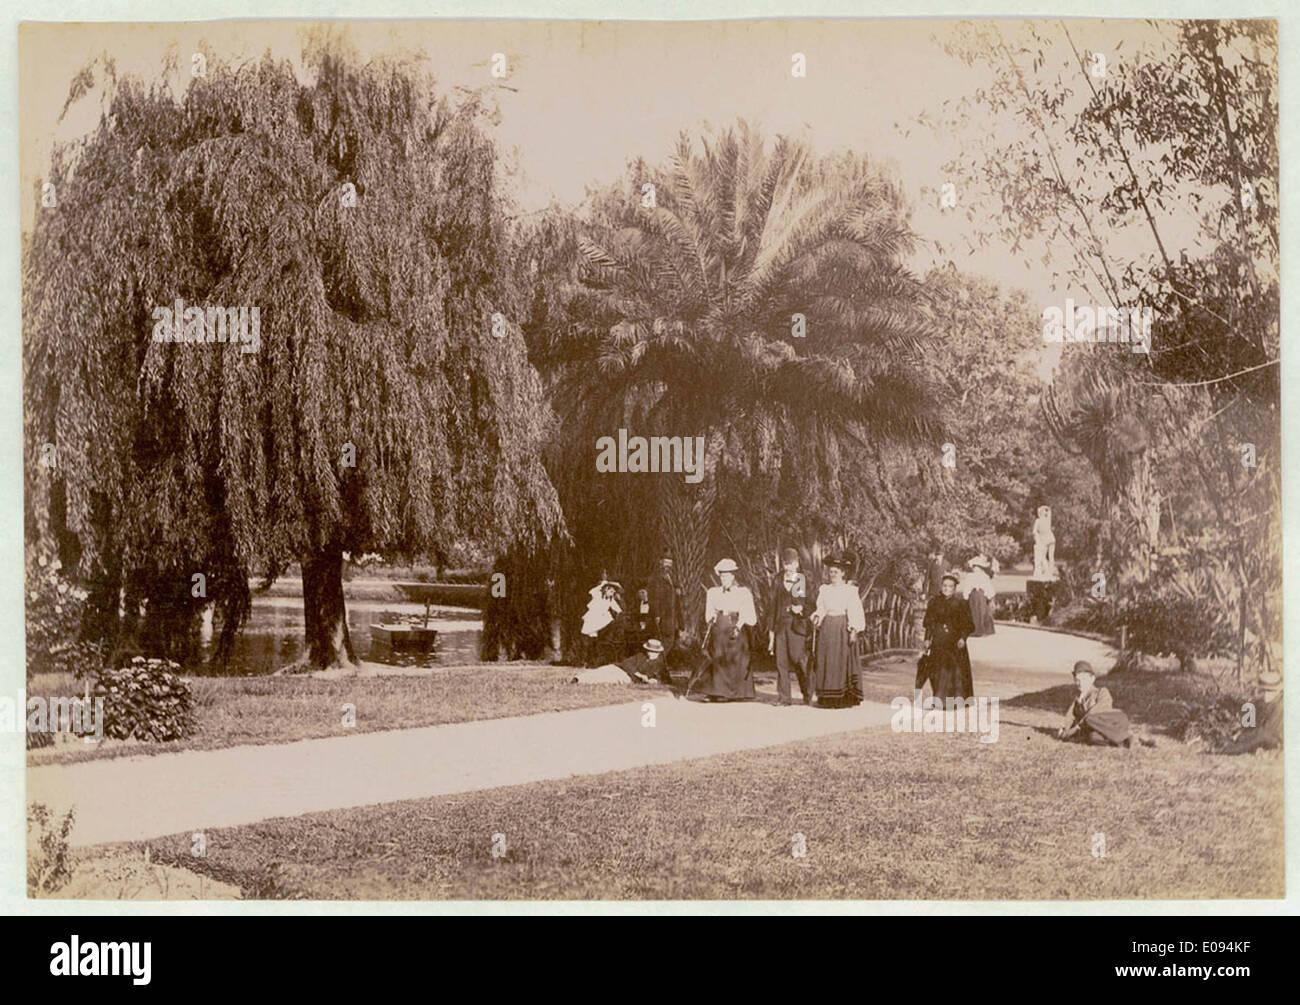 Botanical Gardens, Sydney, c. 1900-1910 Stock Photo